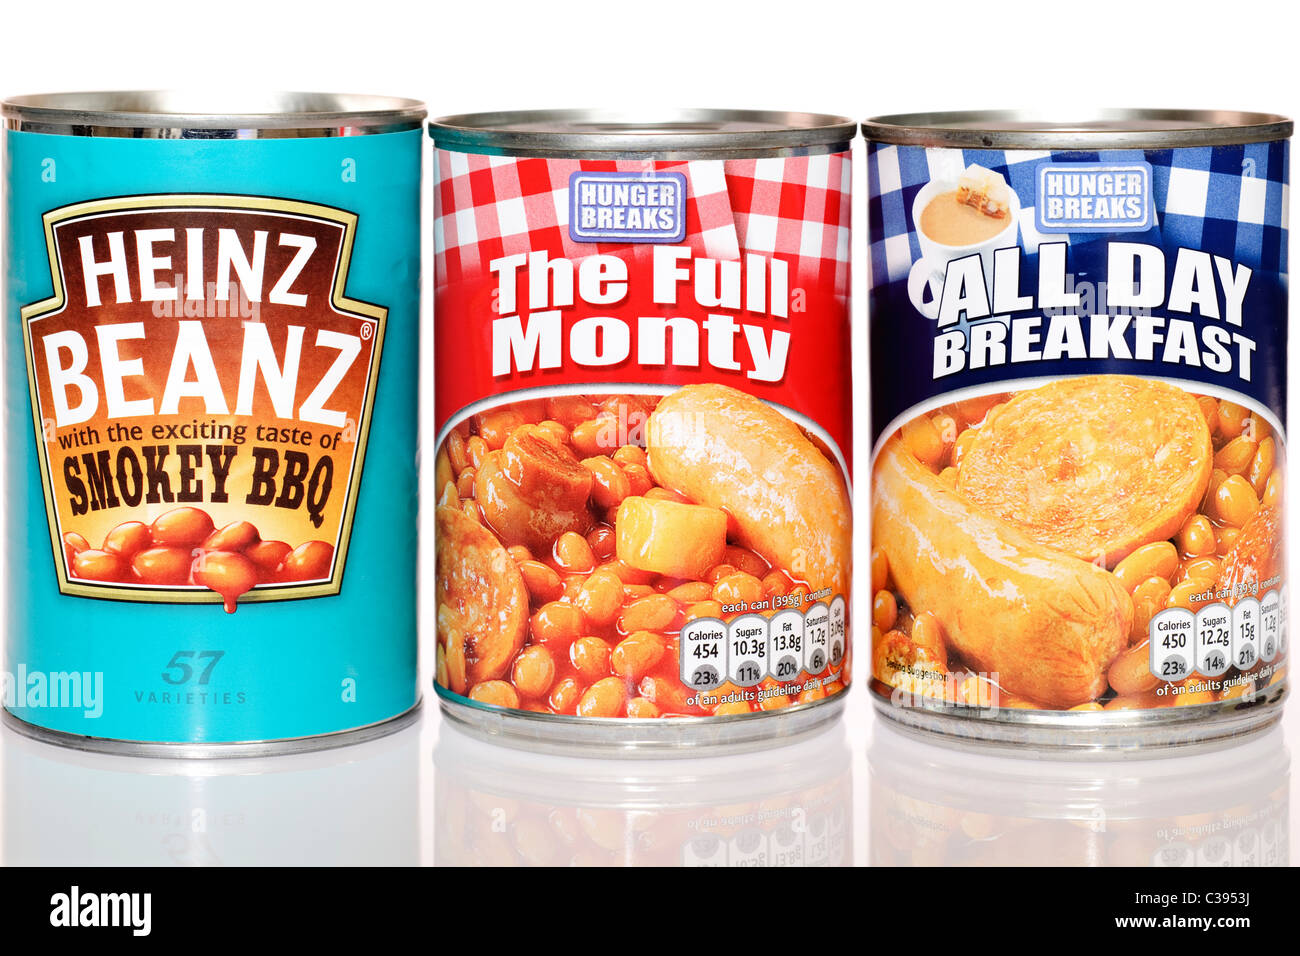 Three cans of beans meals - Stock Image